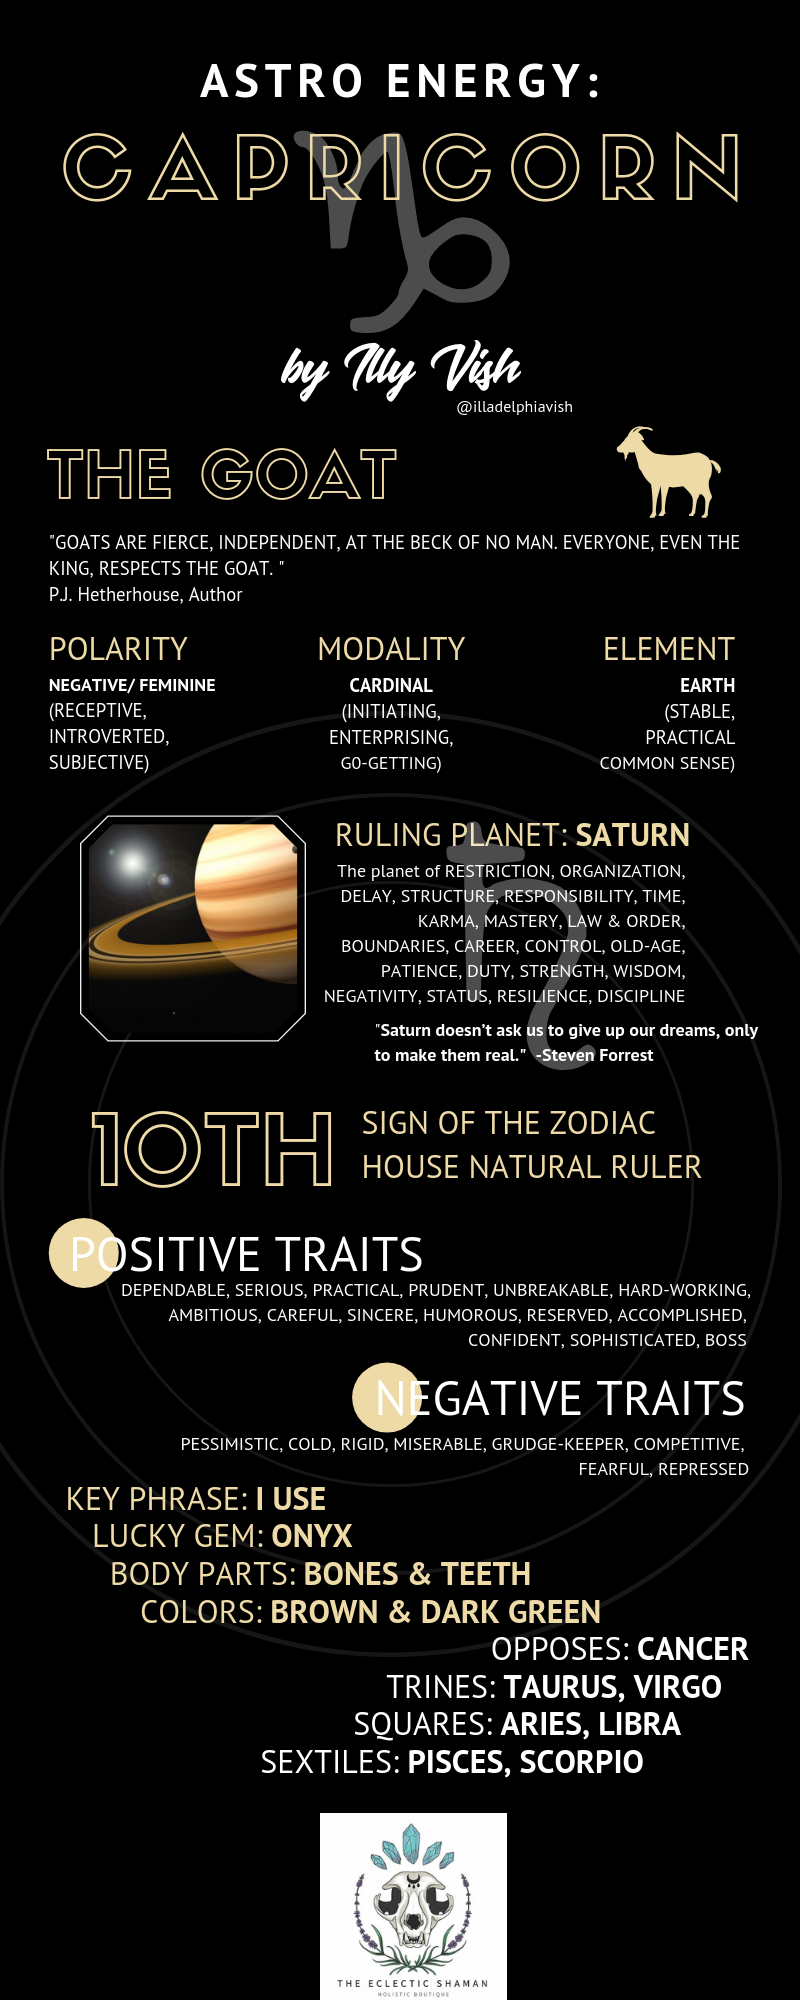 CAPRICORN ENERGY INFOGRAPHIC – Spiritual Gangsta Certified